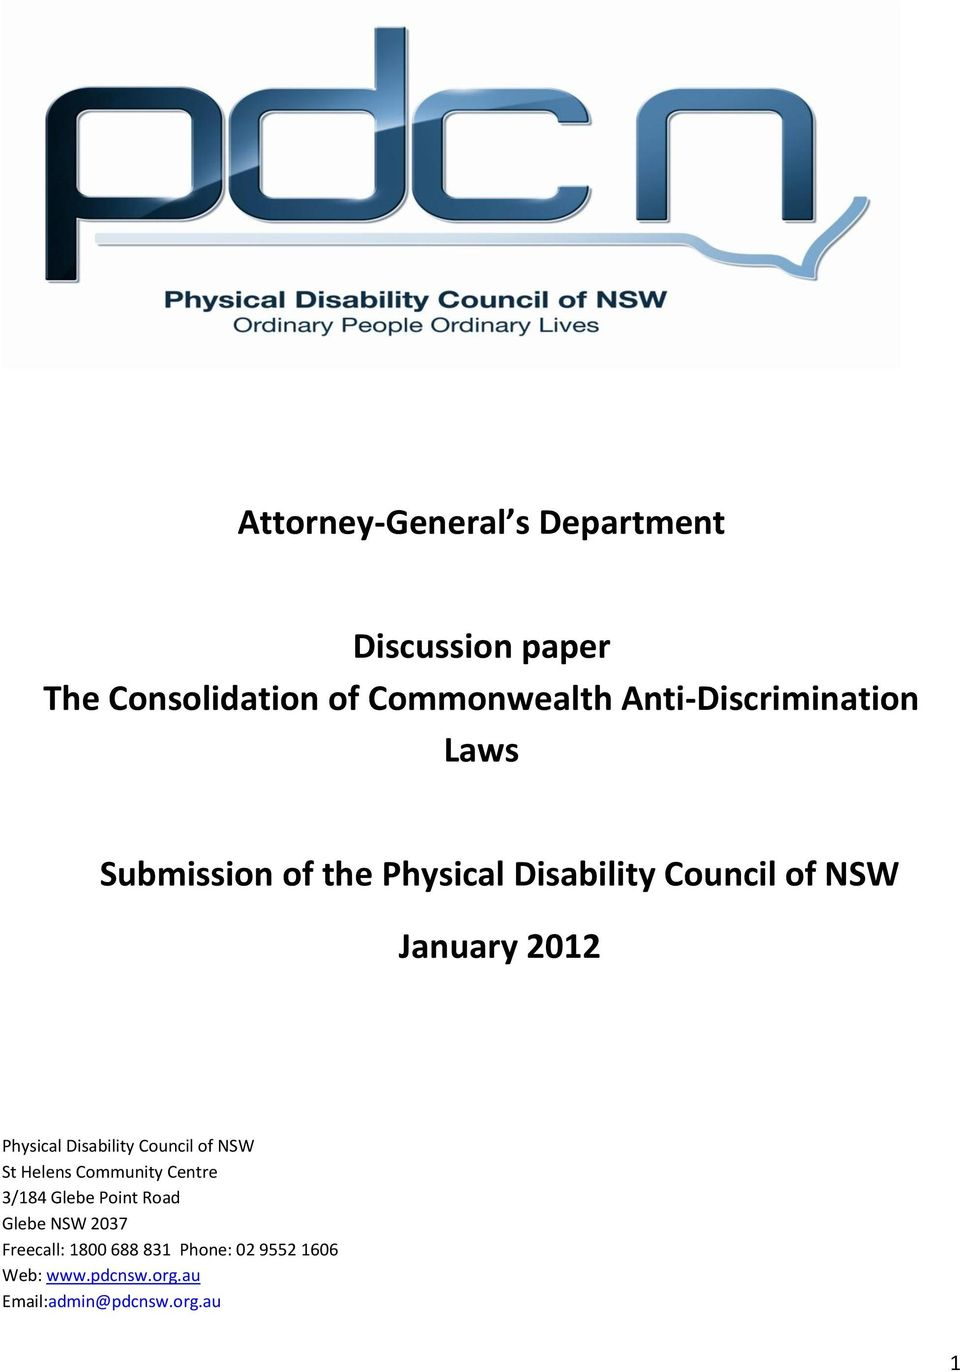 Physical Disability Council of NSW St Helens Community Centre 3/184 Glebe Point Road Glebe